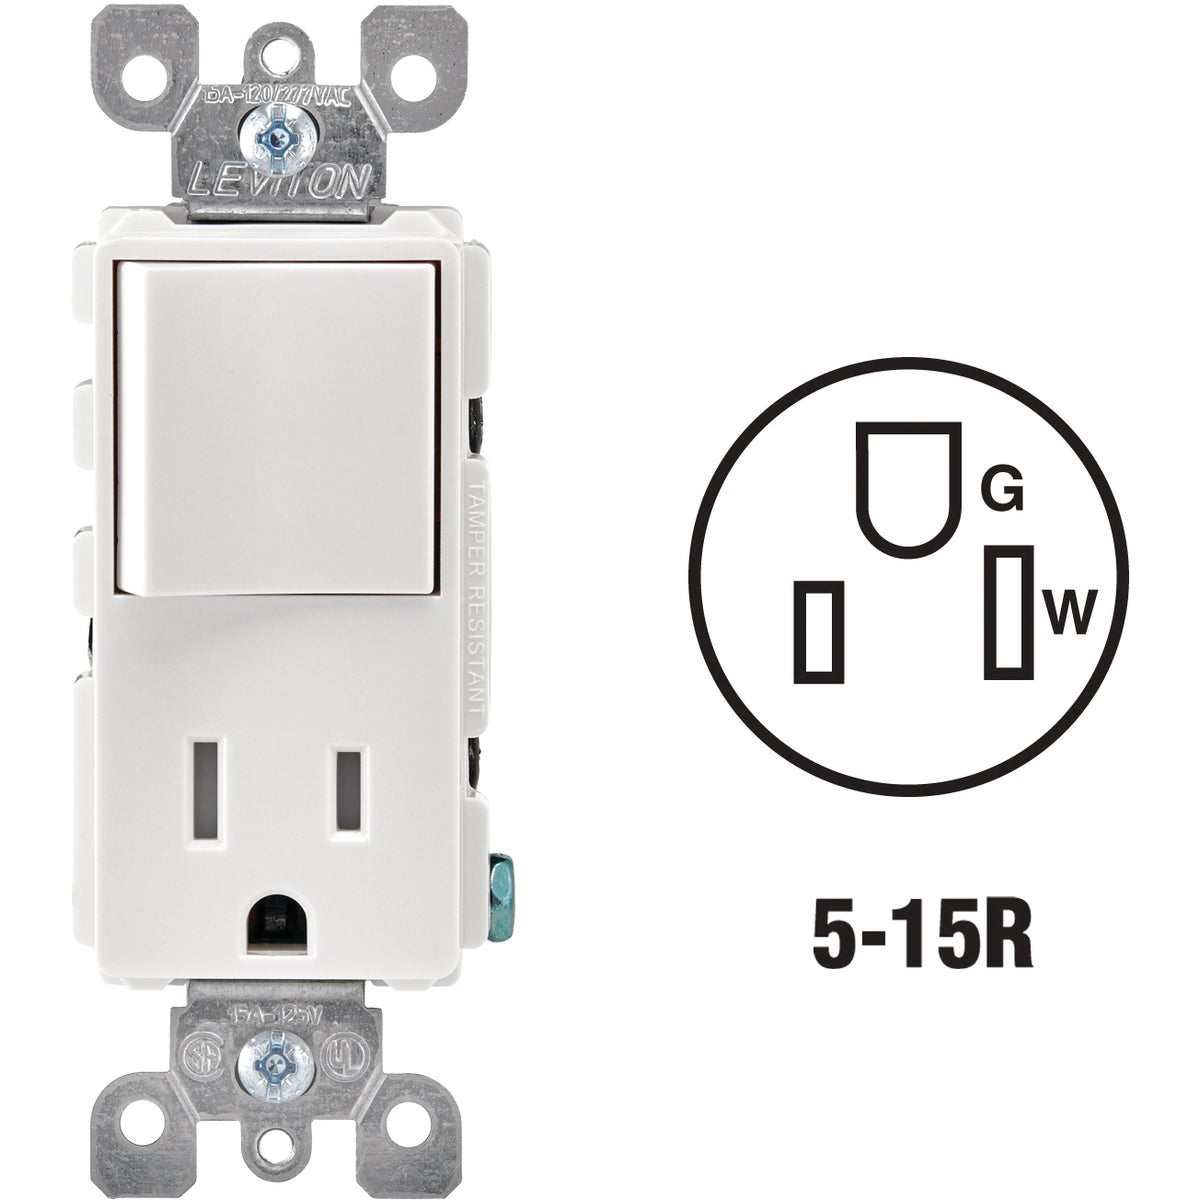 WHT 15A TAMP SWTC/OUTLET - R62-T5625-0WS by Leviton Mfg Co